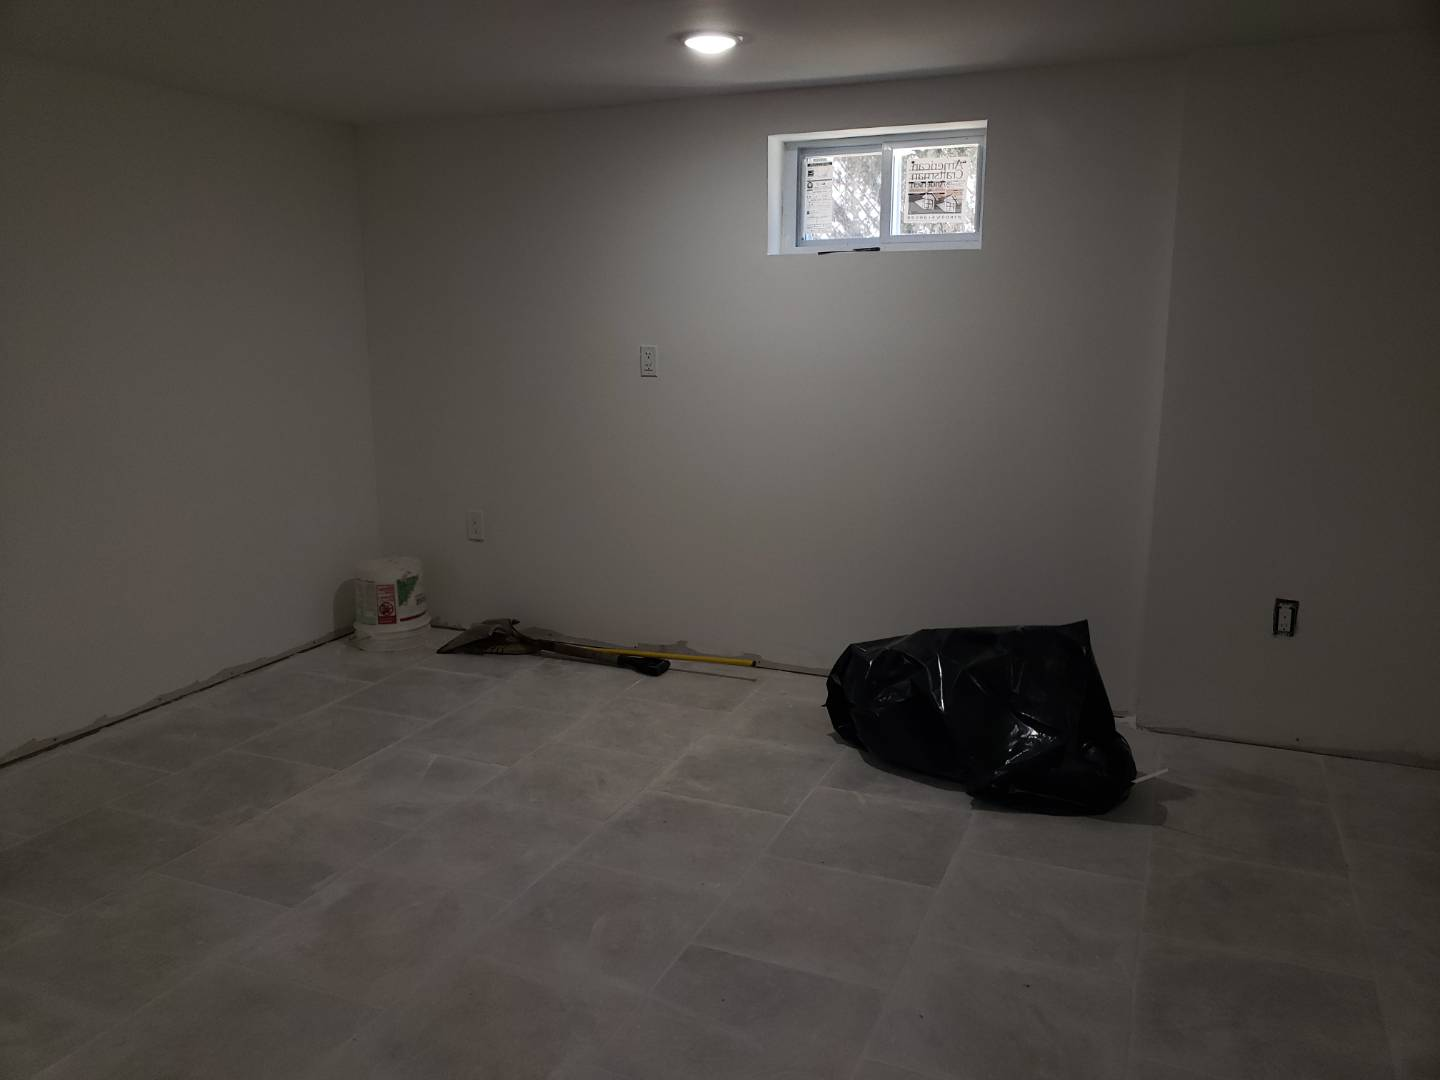 NEW TWO FAMILY HOUS E FOR SALE